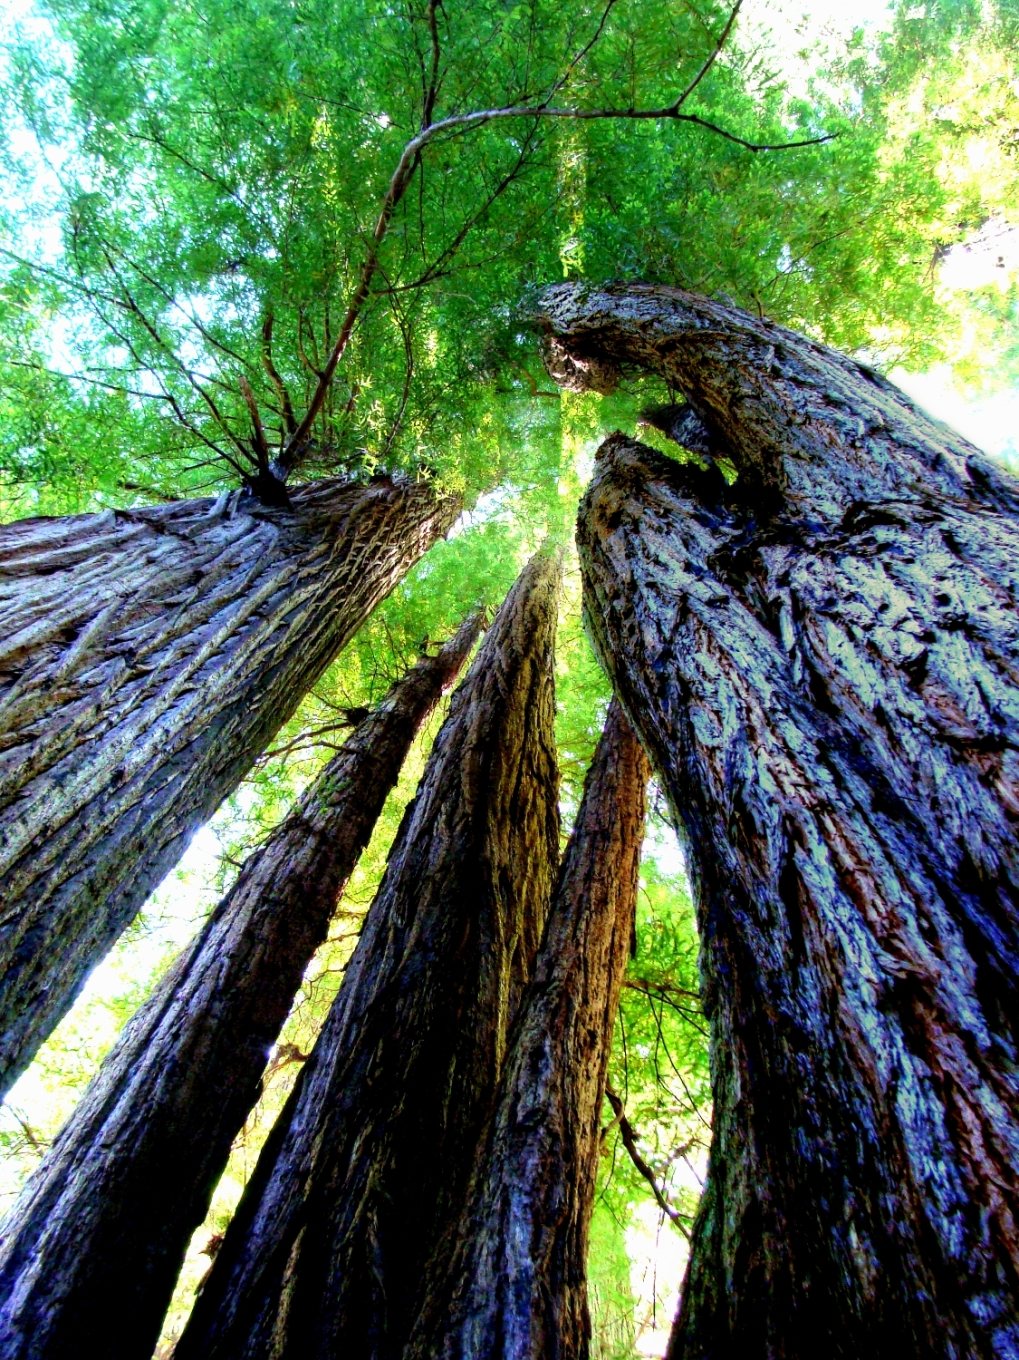 Sequoia sempervirens, http://wp.me/p1yRFa-29a